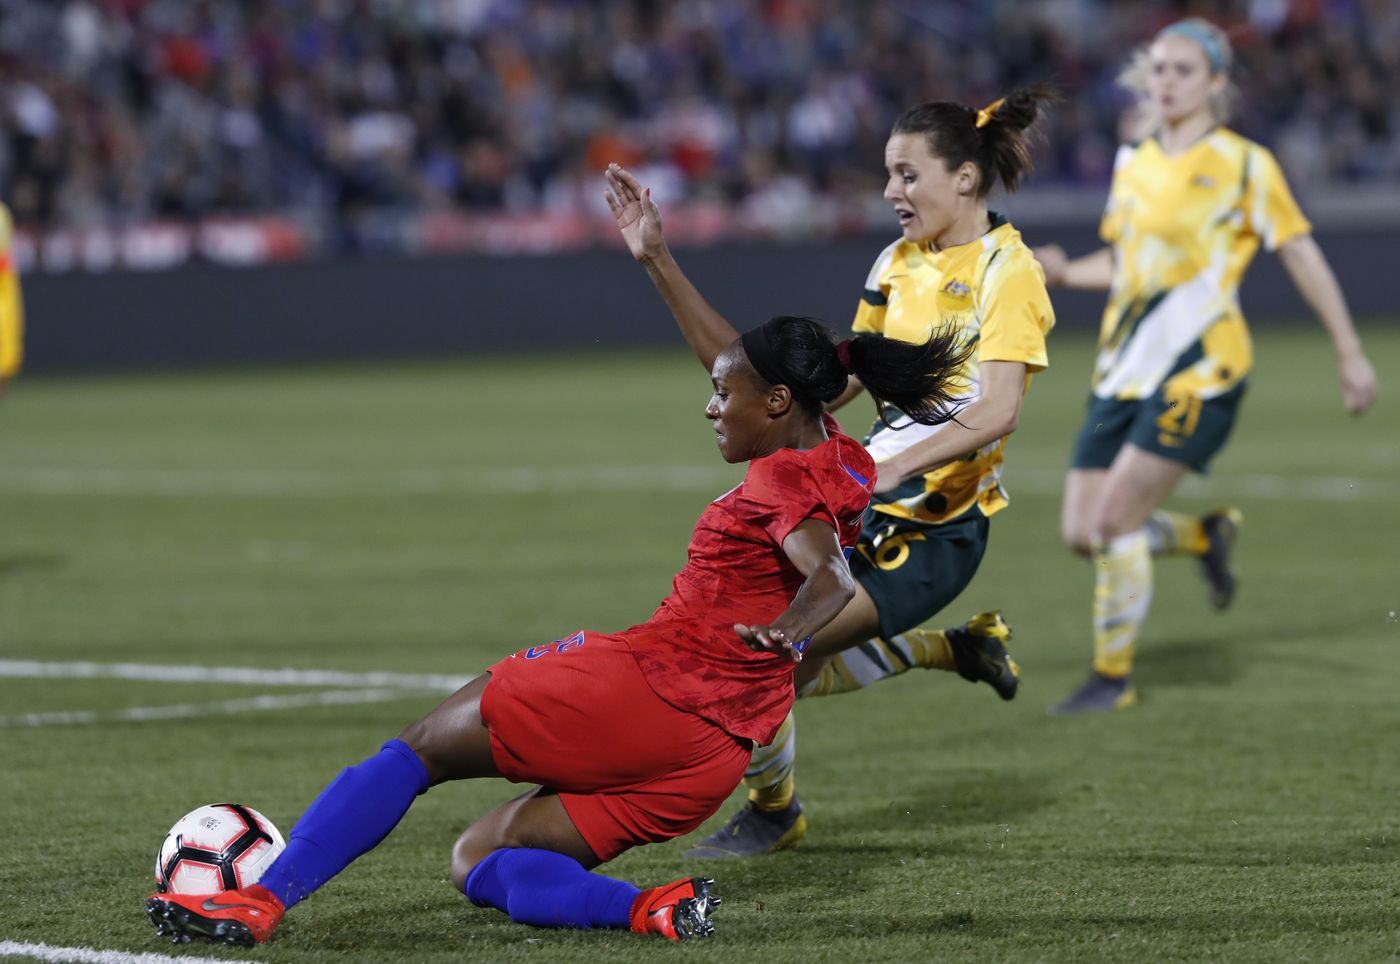 Meet the 23 players on the U S  women's national soccer team